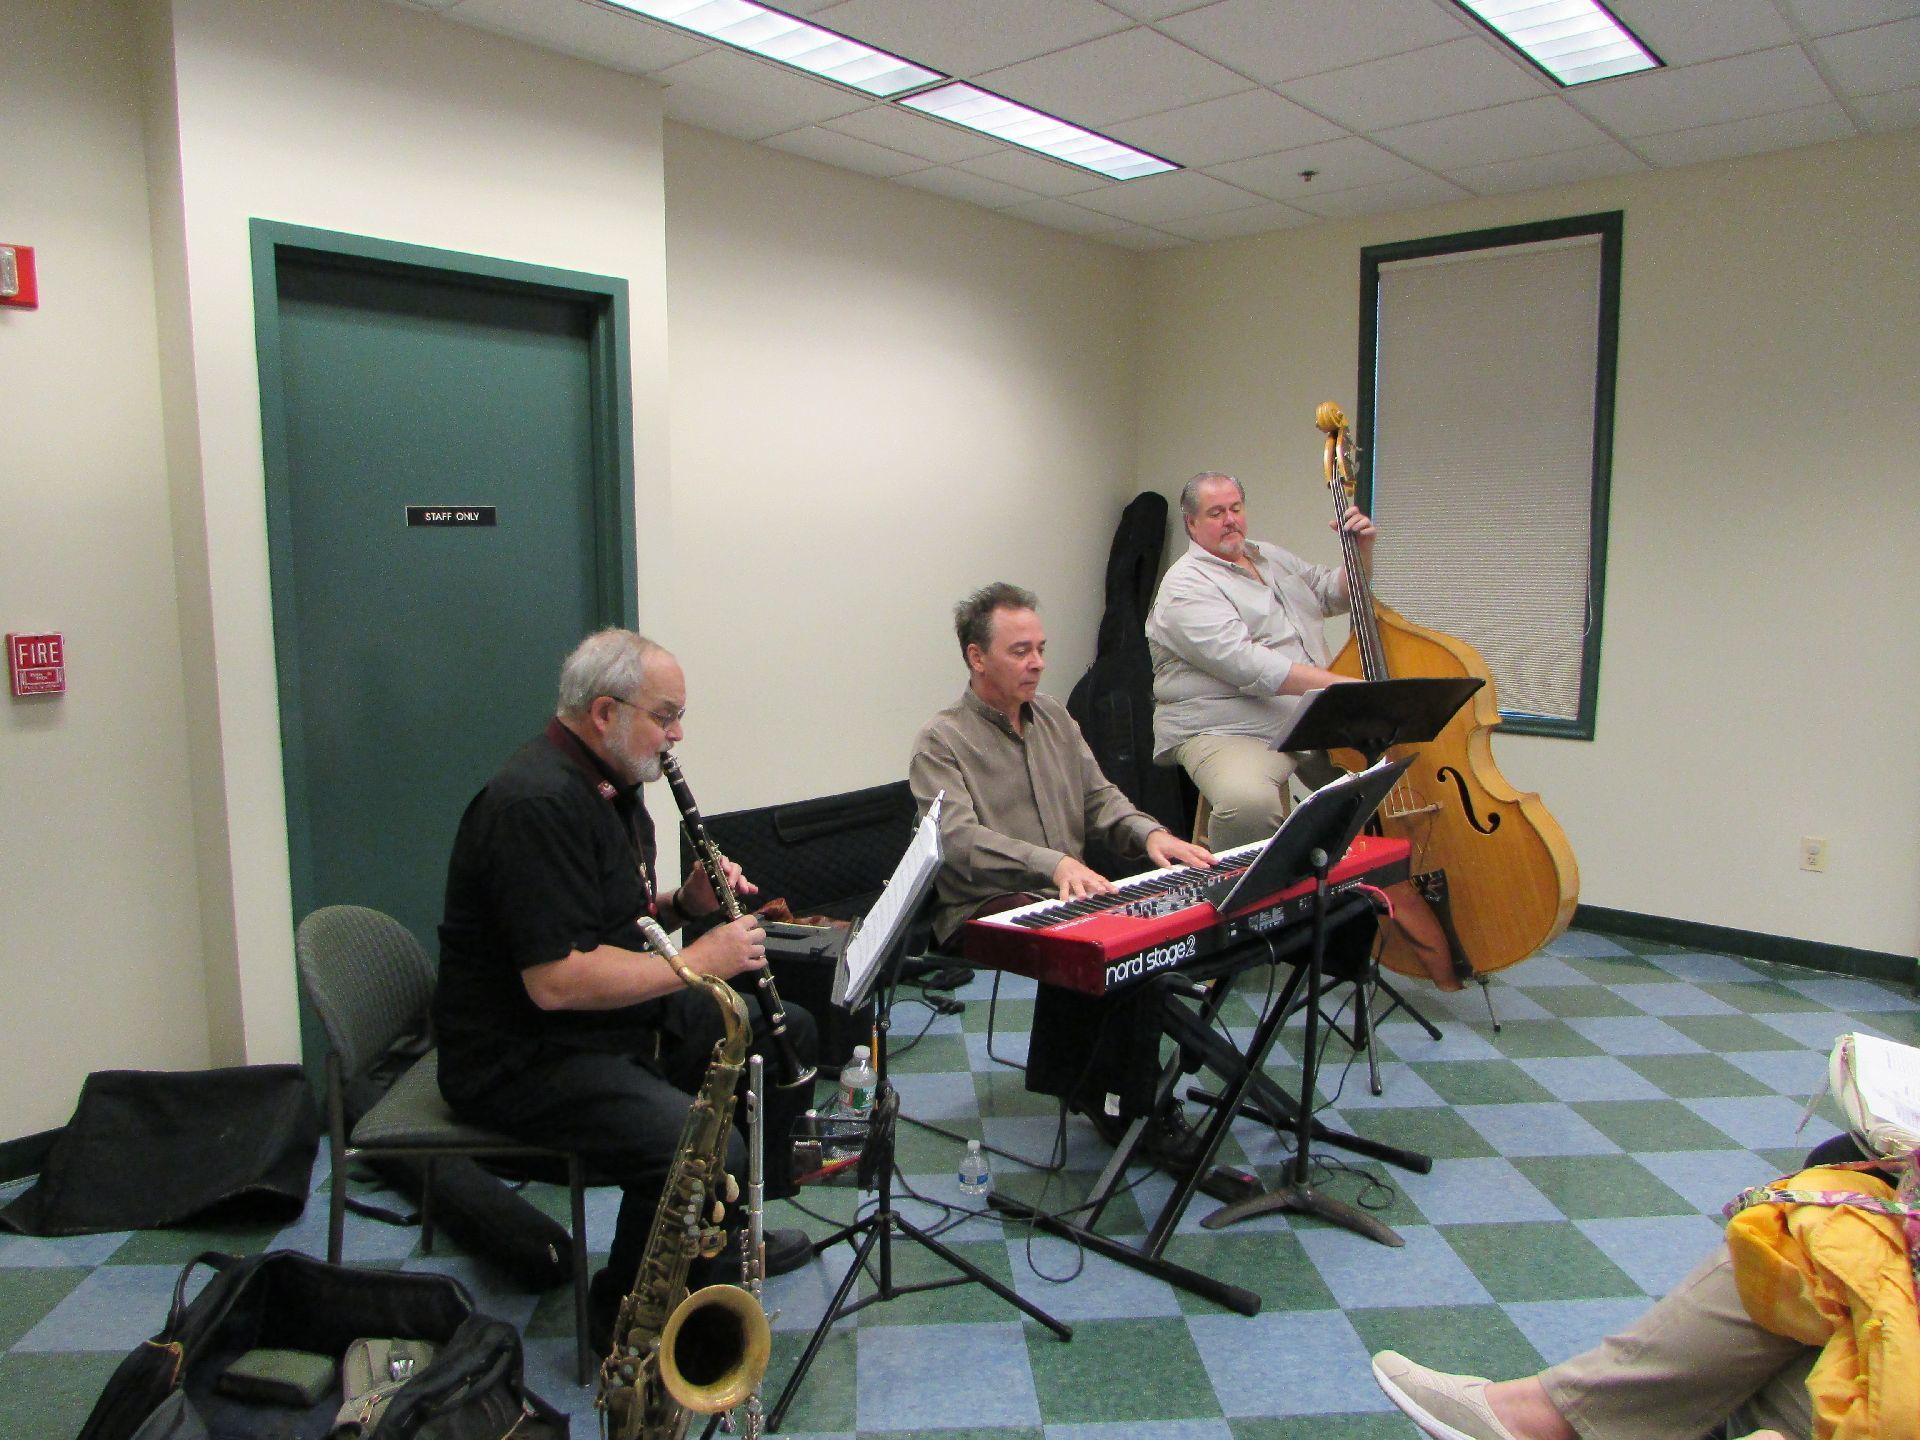 861a64b04f00badae383_Traveling_Stage_Company_-_Regan_Ryzuk_in_keyboards_and_clarinet_and_double_bass_accompanimment_-_May_6_2015_at_WTL.jpg